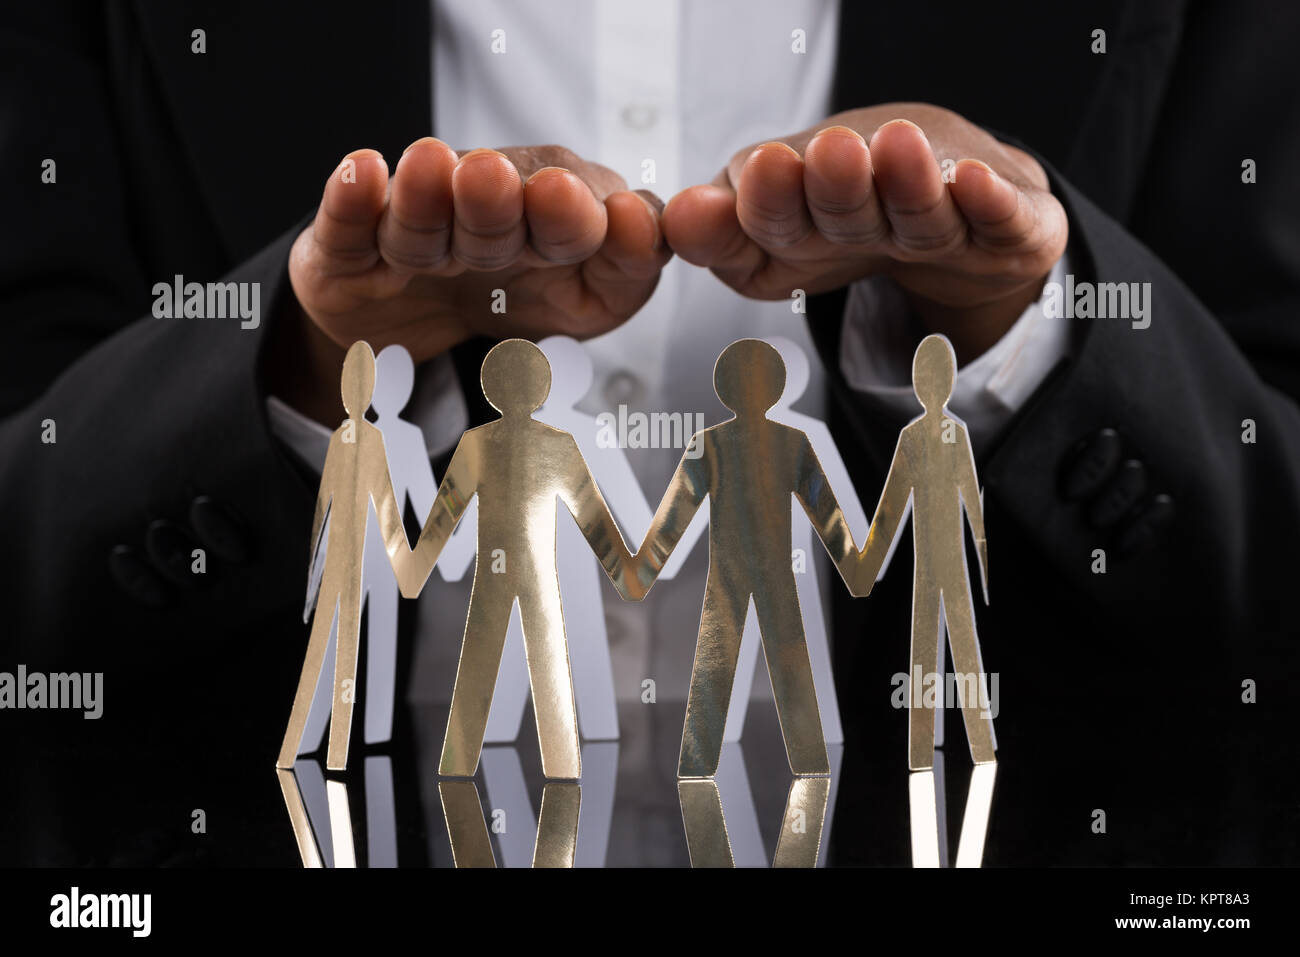 Businessperson Protecting Cut-out Figures - Stock Image